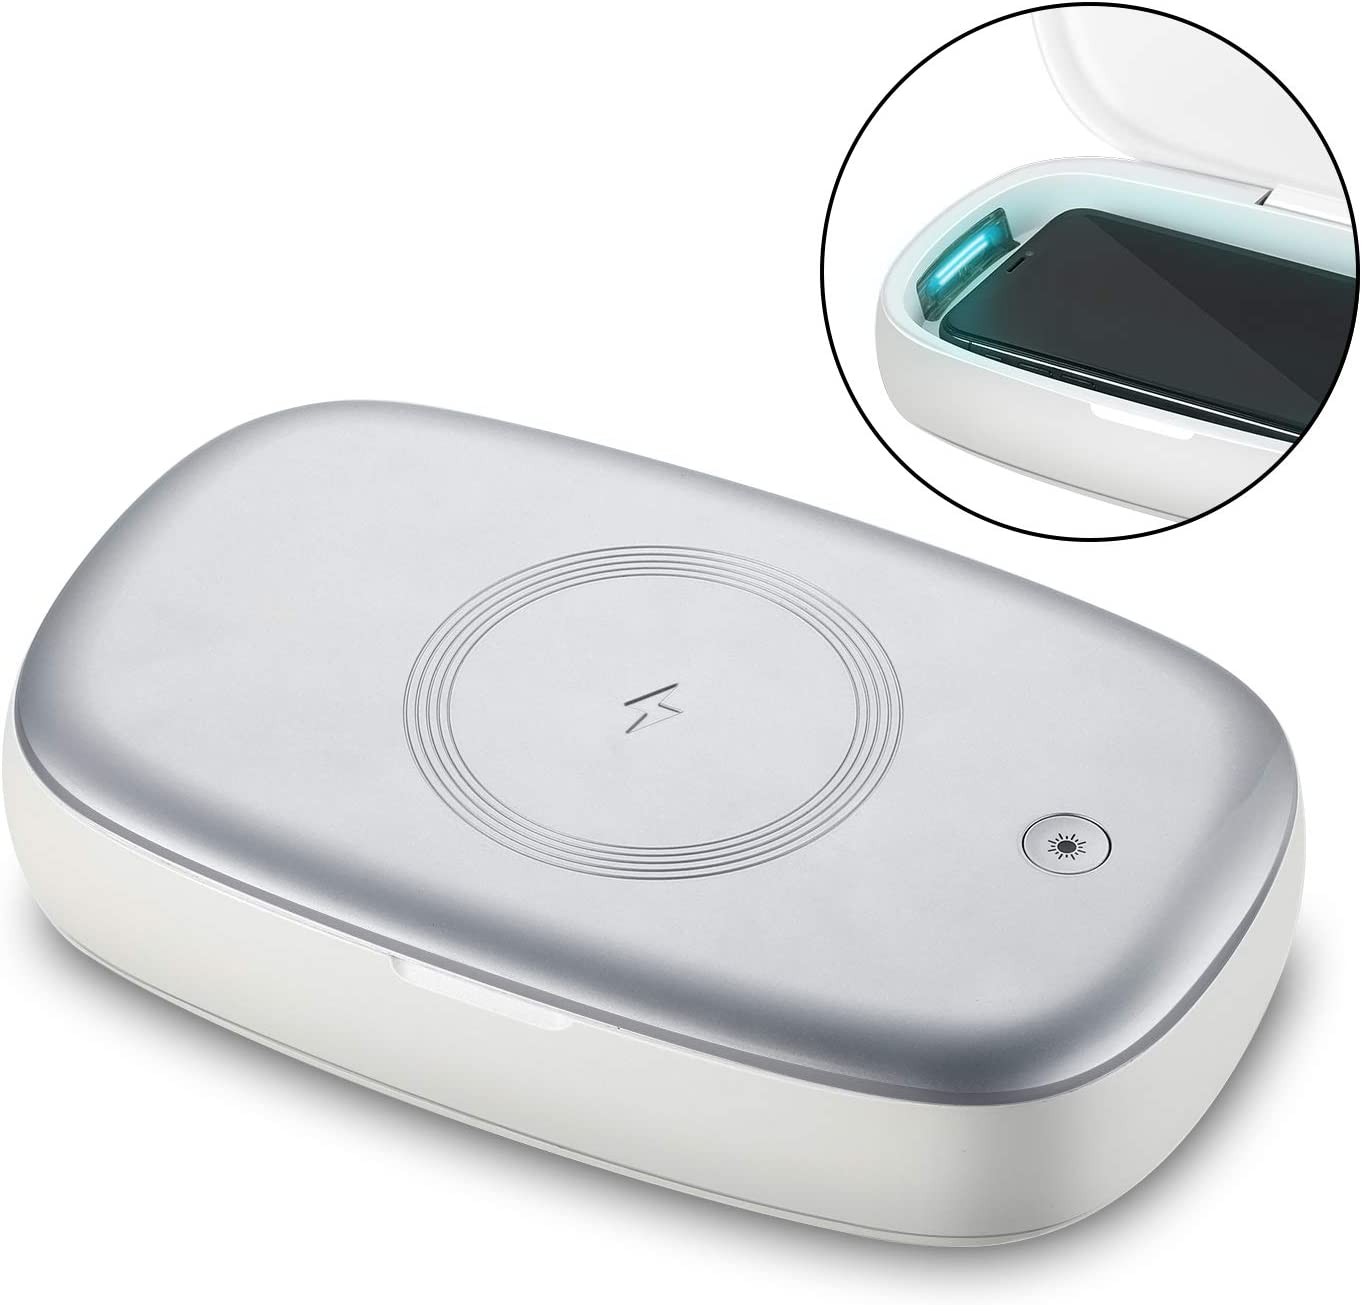 Lecone UV Cell Phone Sanitizer and Wireless Charger Multi-Function Disinfection Box, 3-in-1 Phone Sterilizer Box - Charger & Aromatherapy for iPhone X, XS, XS Max, XR, Samsung Galaxy S10 (Silver)